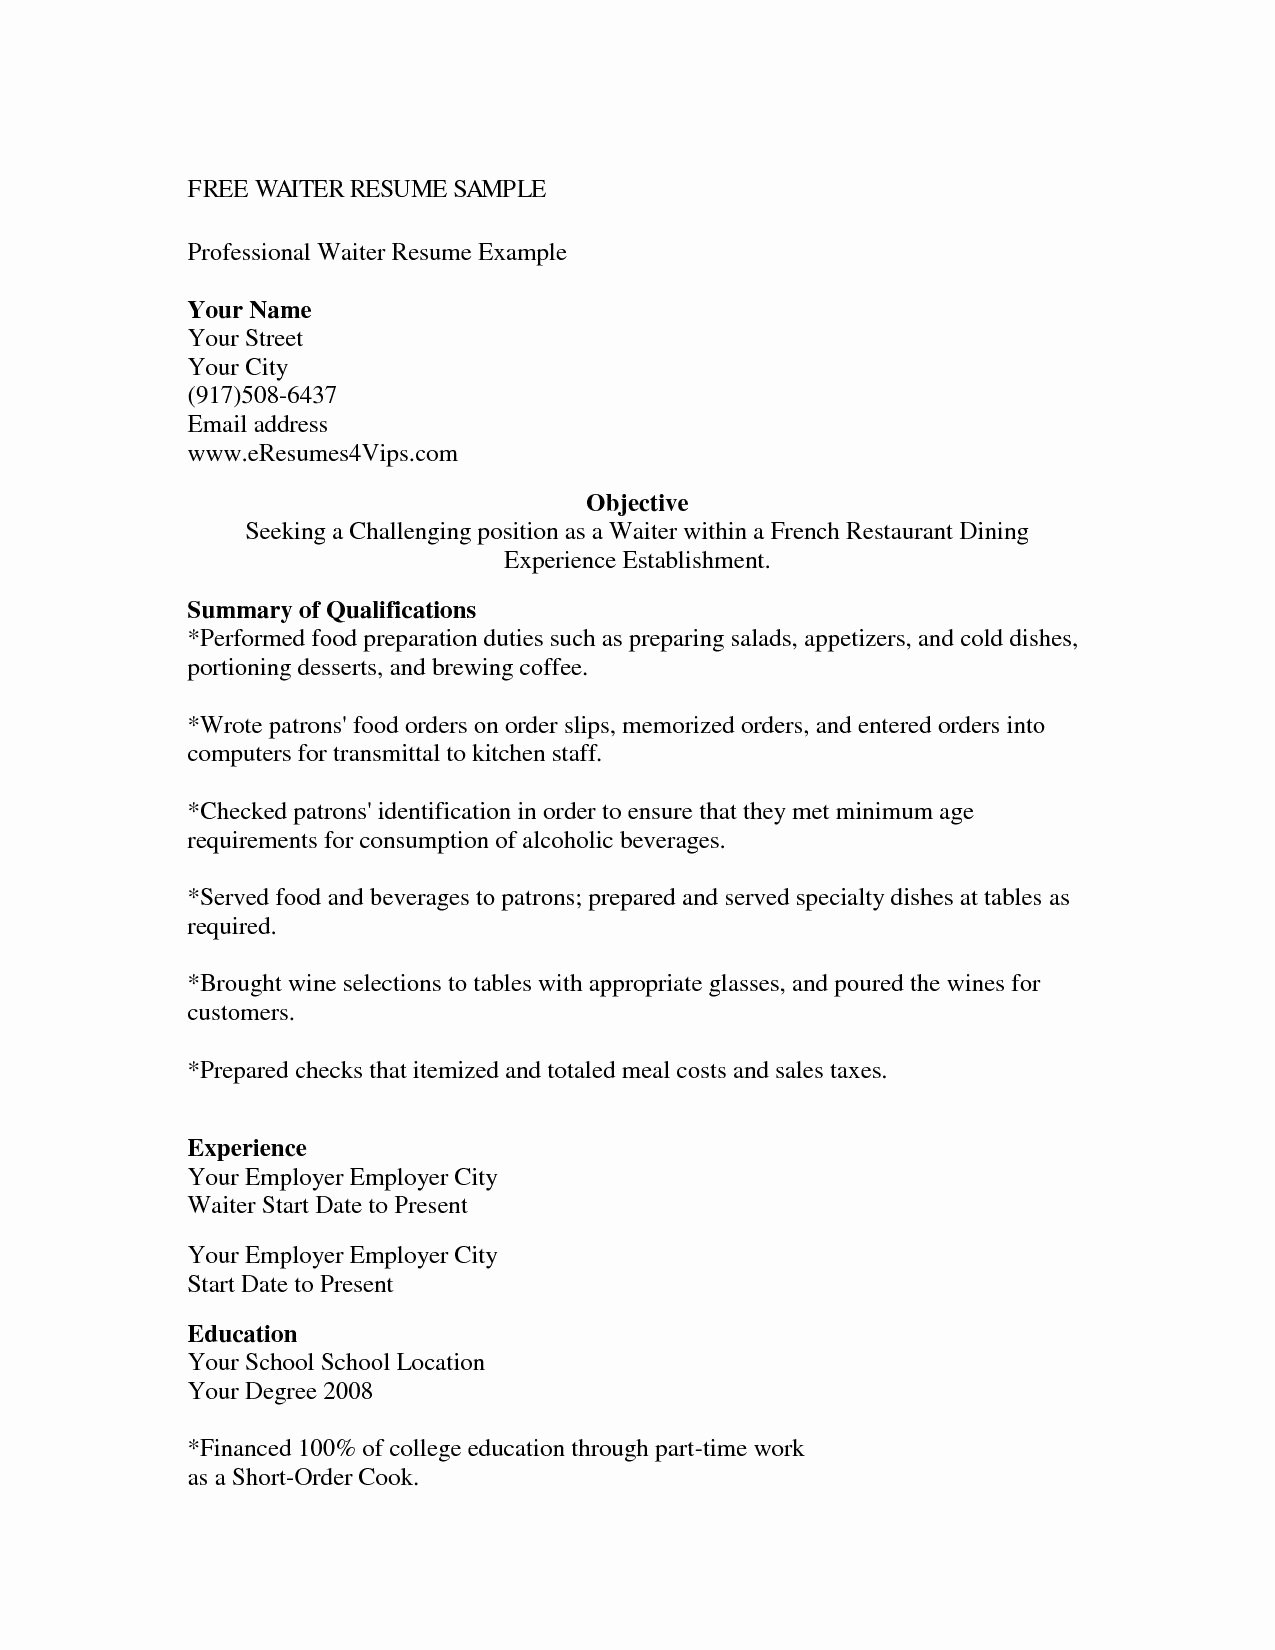 Server Cover Letter Example Luxury Cover Letter Resume for Waitress Position Example within